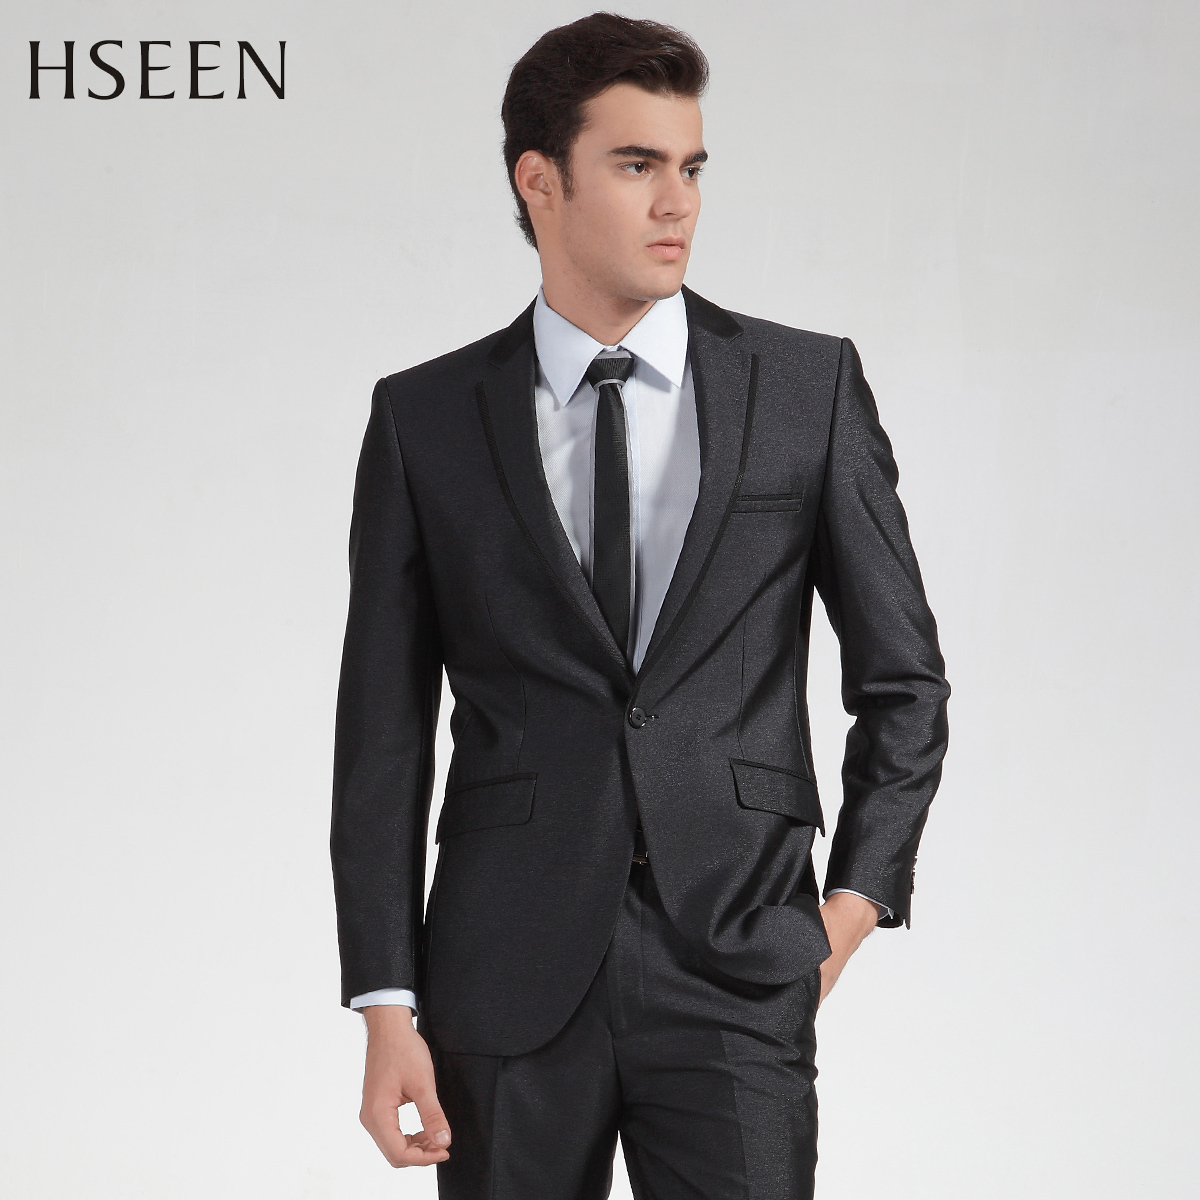 Wedding Dresses For Men: Bridal Style And Wedding Ideas: Wedding Dress For Men